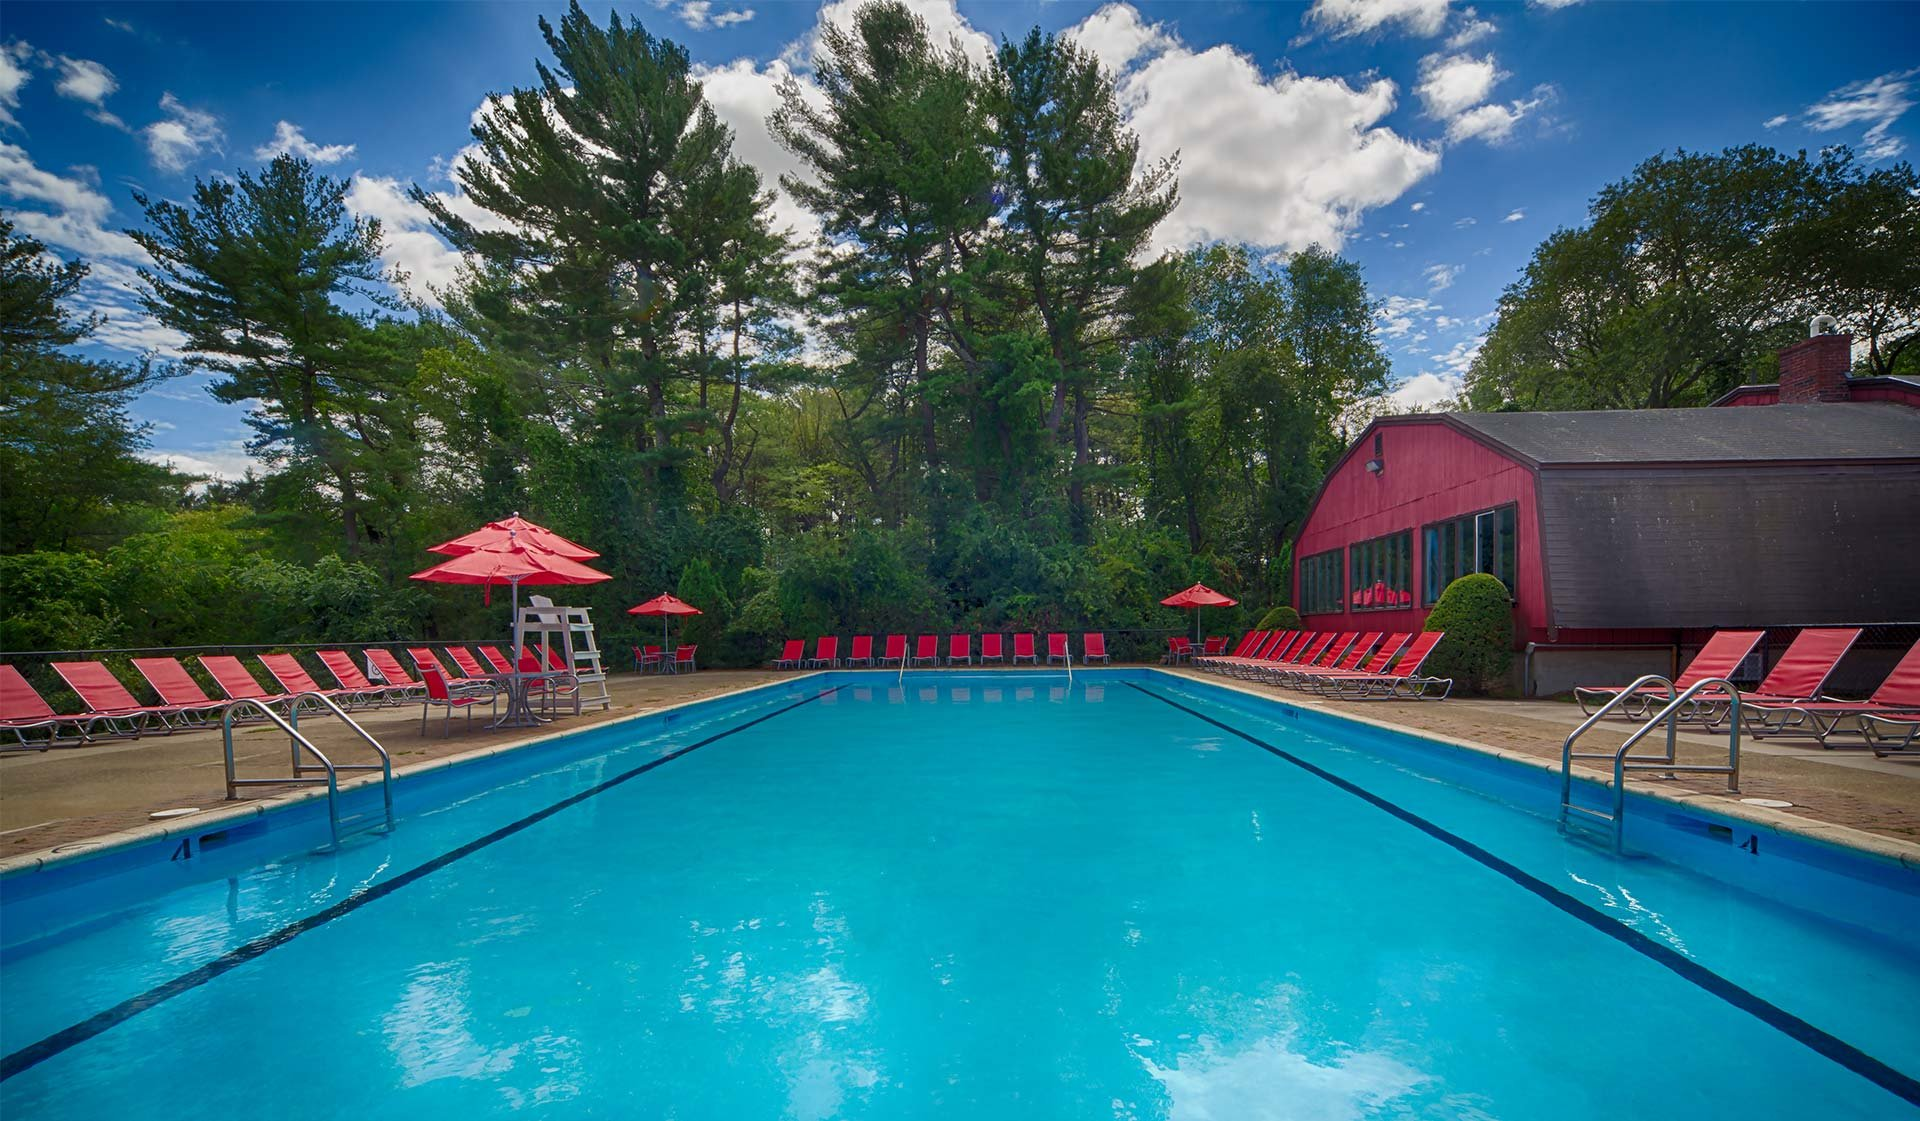 Waterford Village Apartments in Bridgewater, MA - Large Swimming Pool